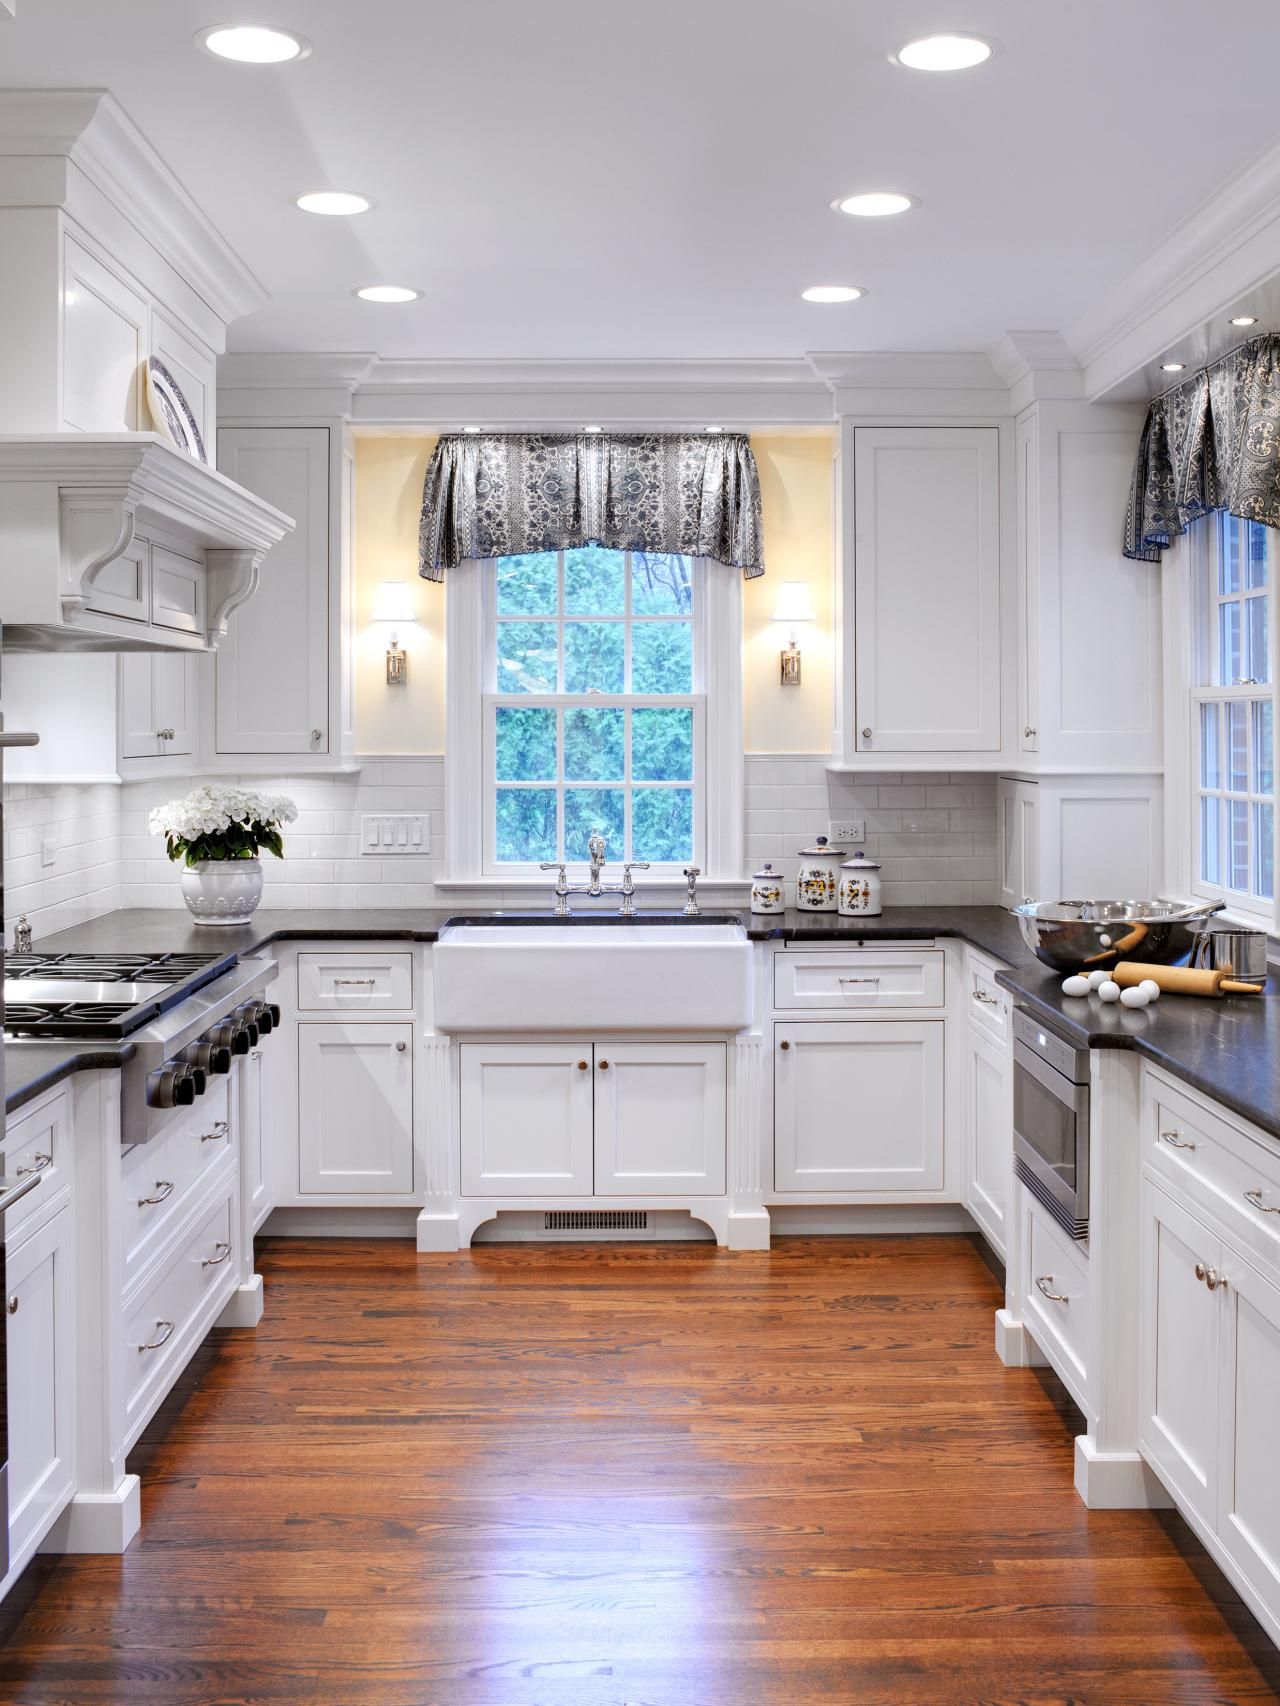 Custom Kitchen Windows: Pictures, Ideas & Tips From HGTV | HGTV